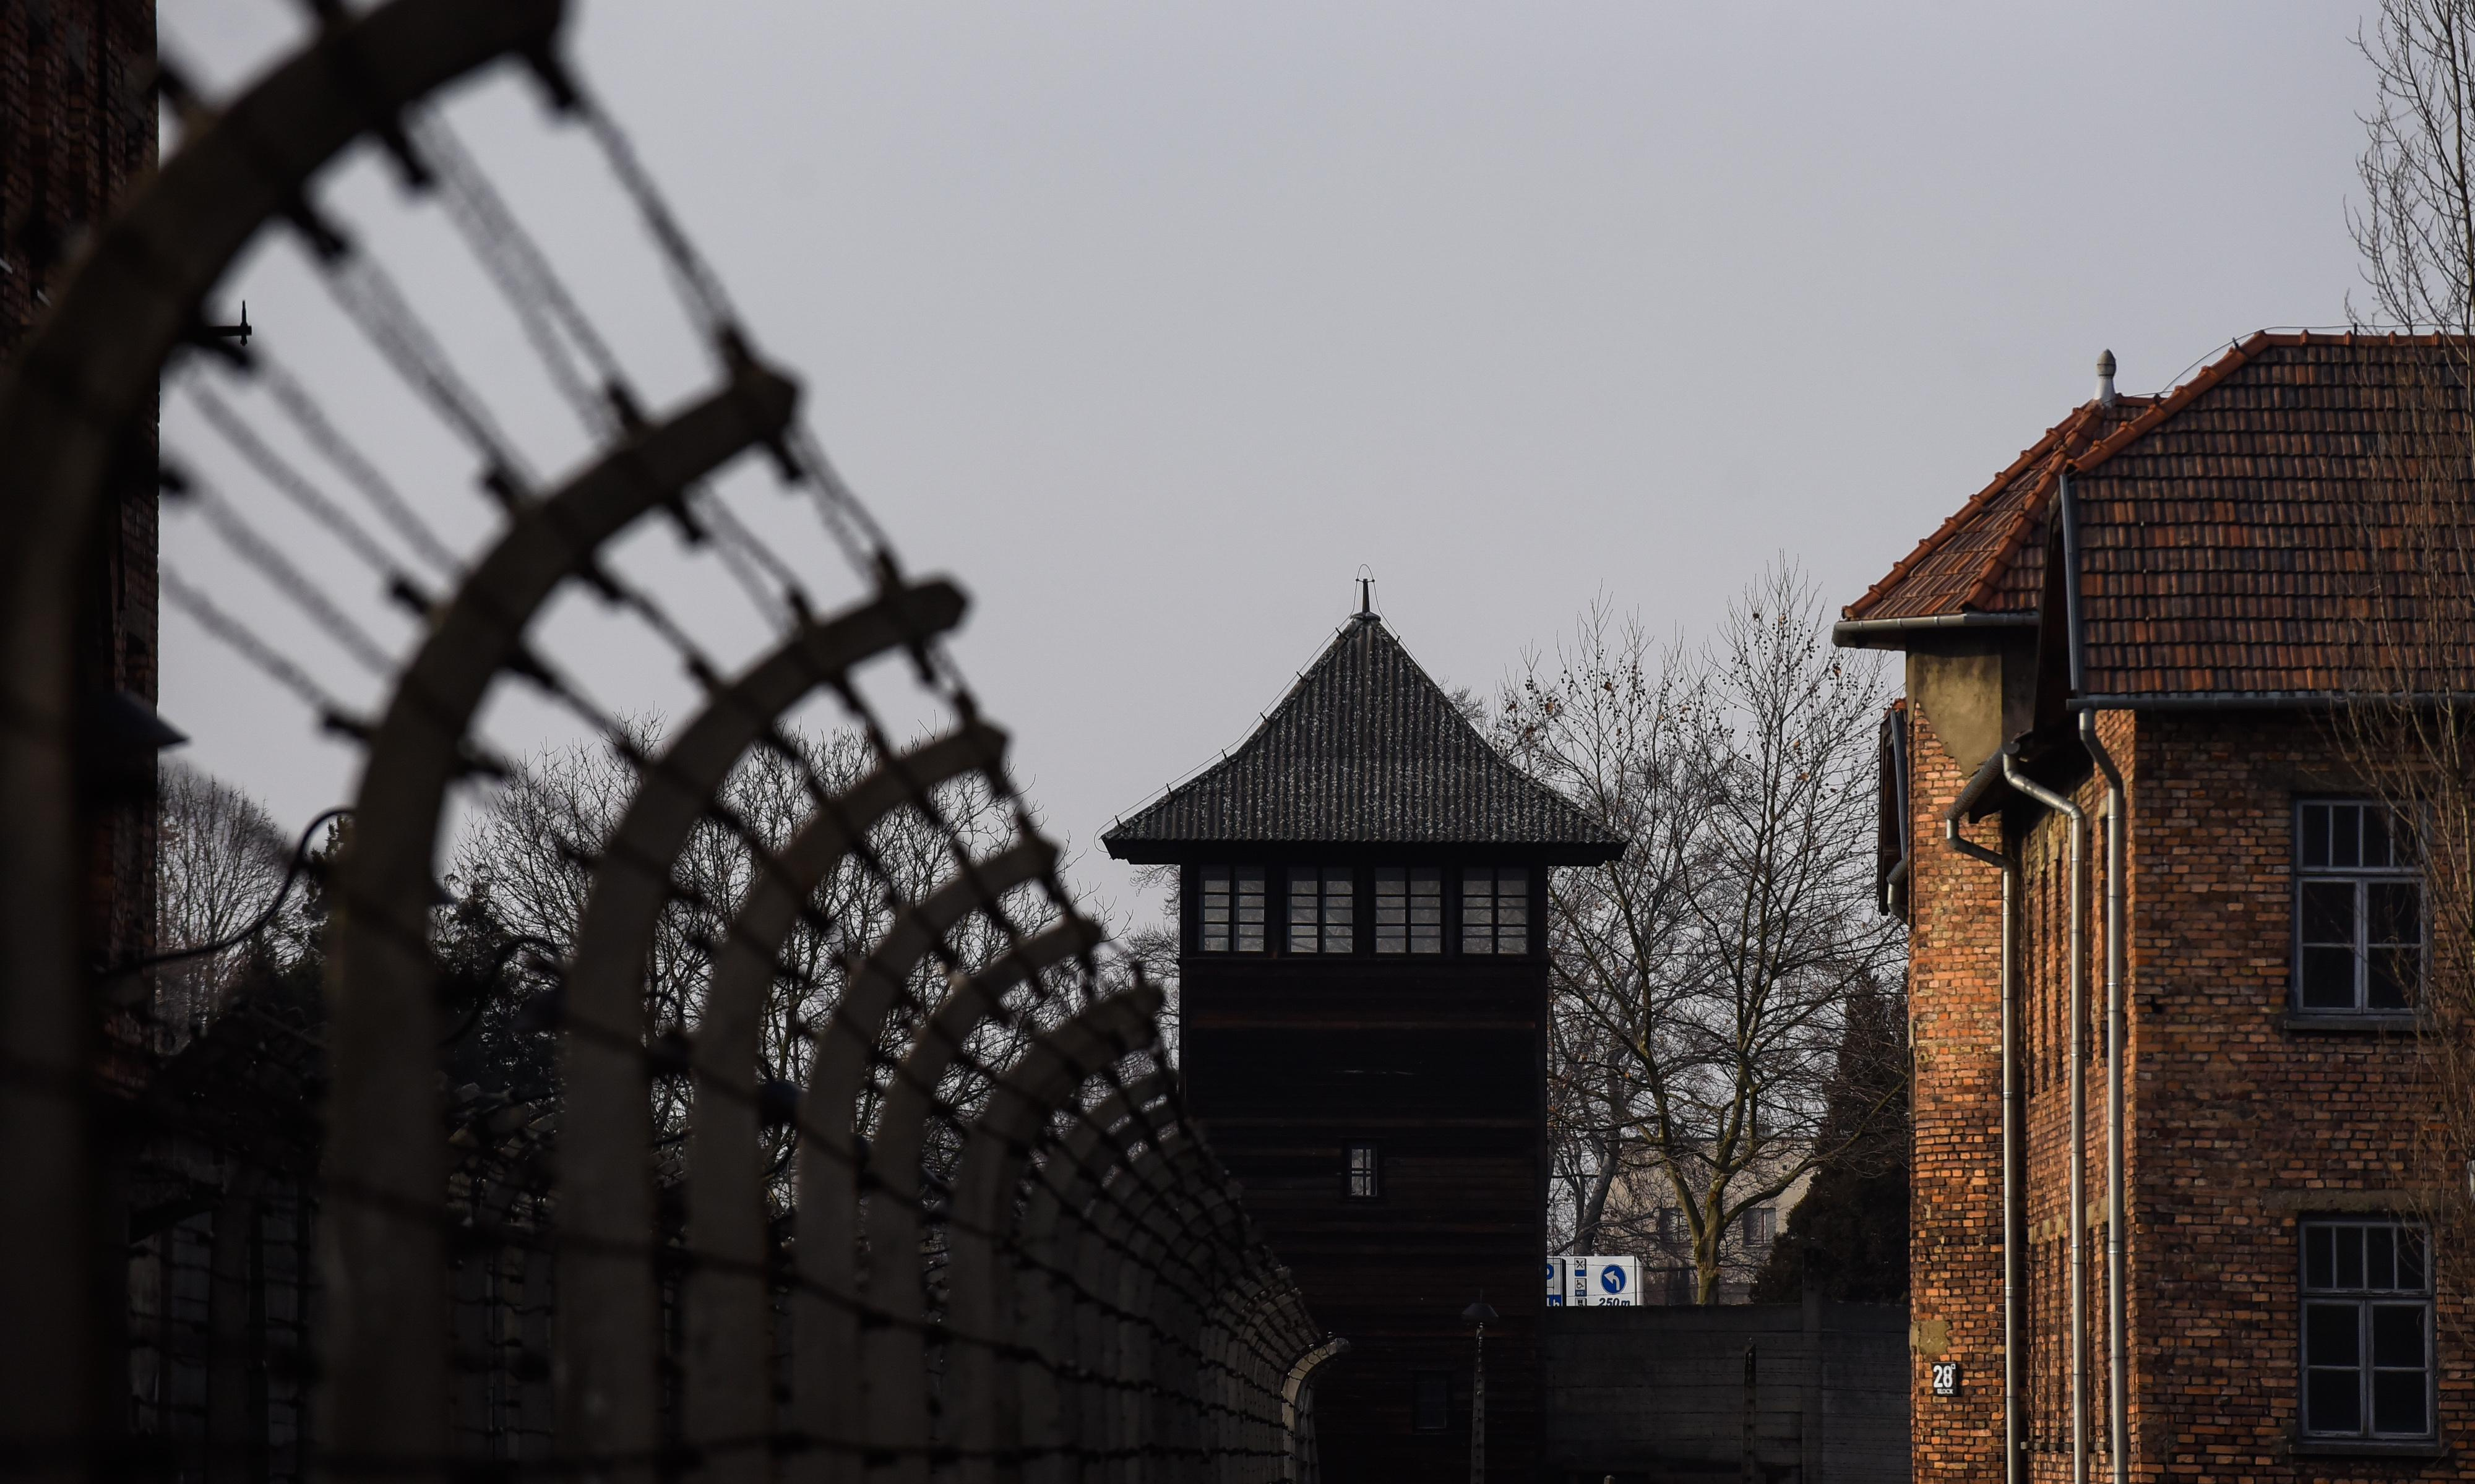 I have lived my life in the shadow of Auschwitz. This is what it has meant